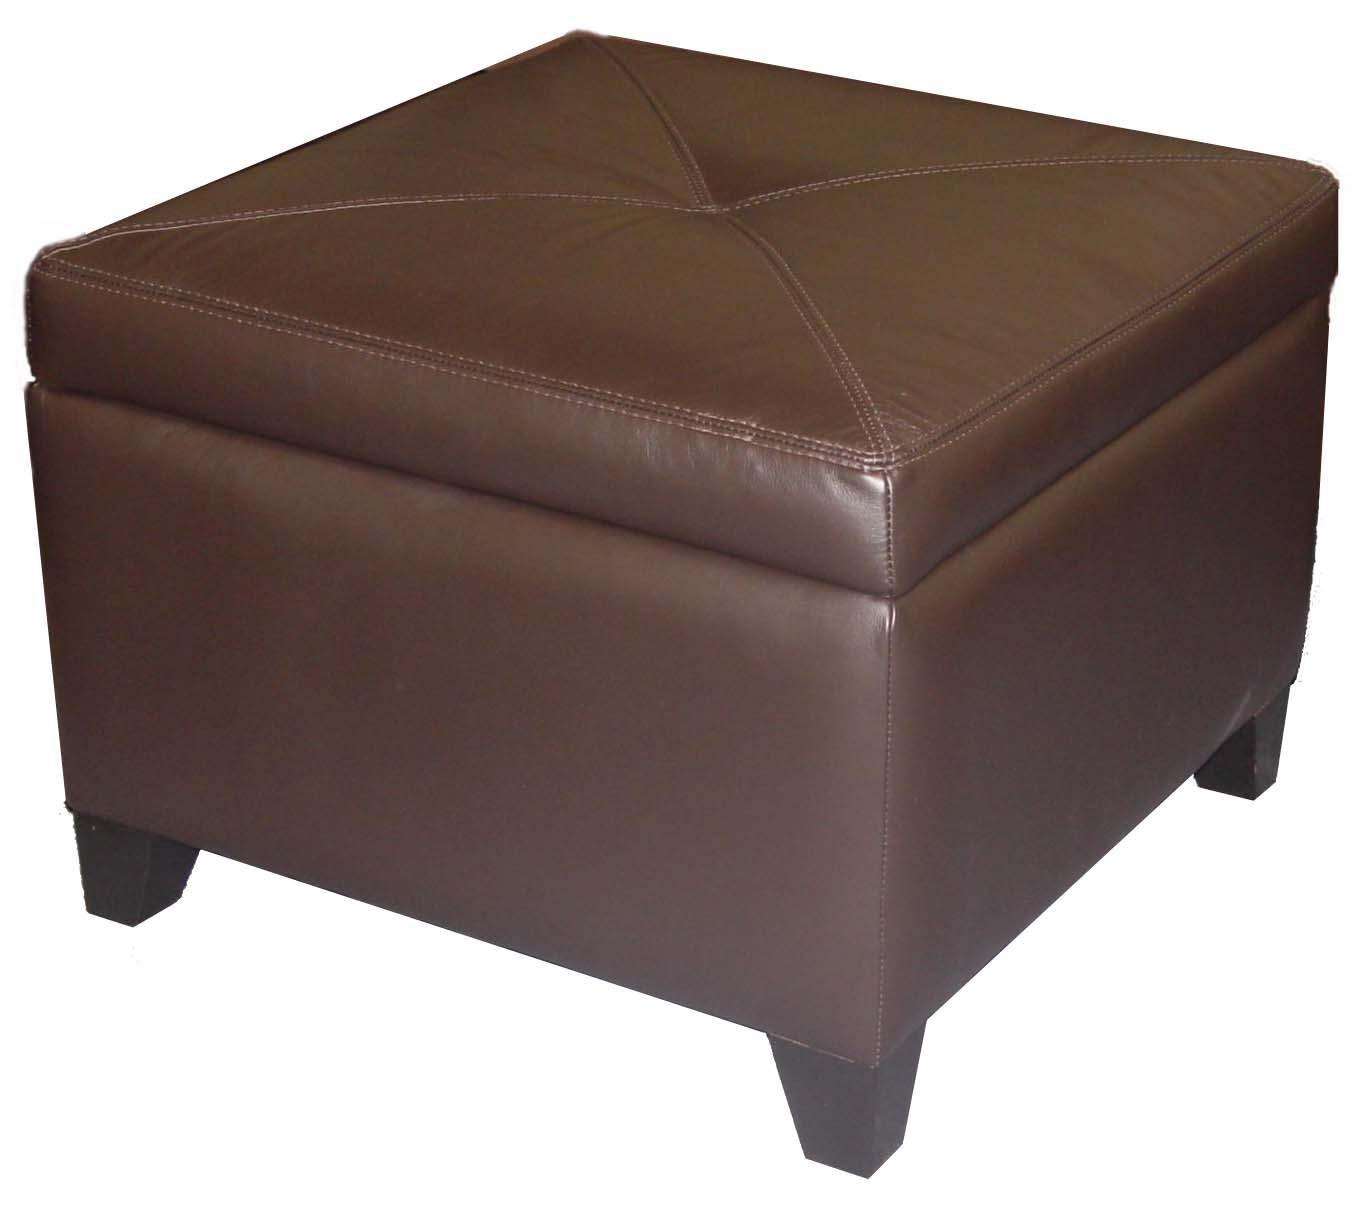 Beau Accentuates Miles Leather Square Storage Ottoman With Center Button Tufting  By Jonathan Louis